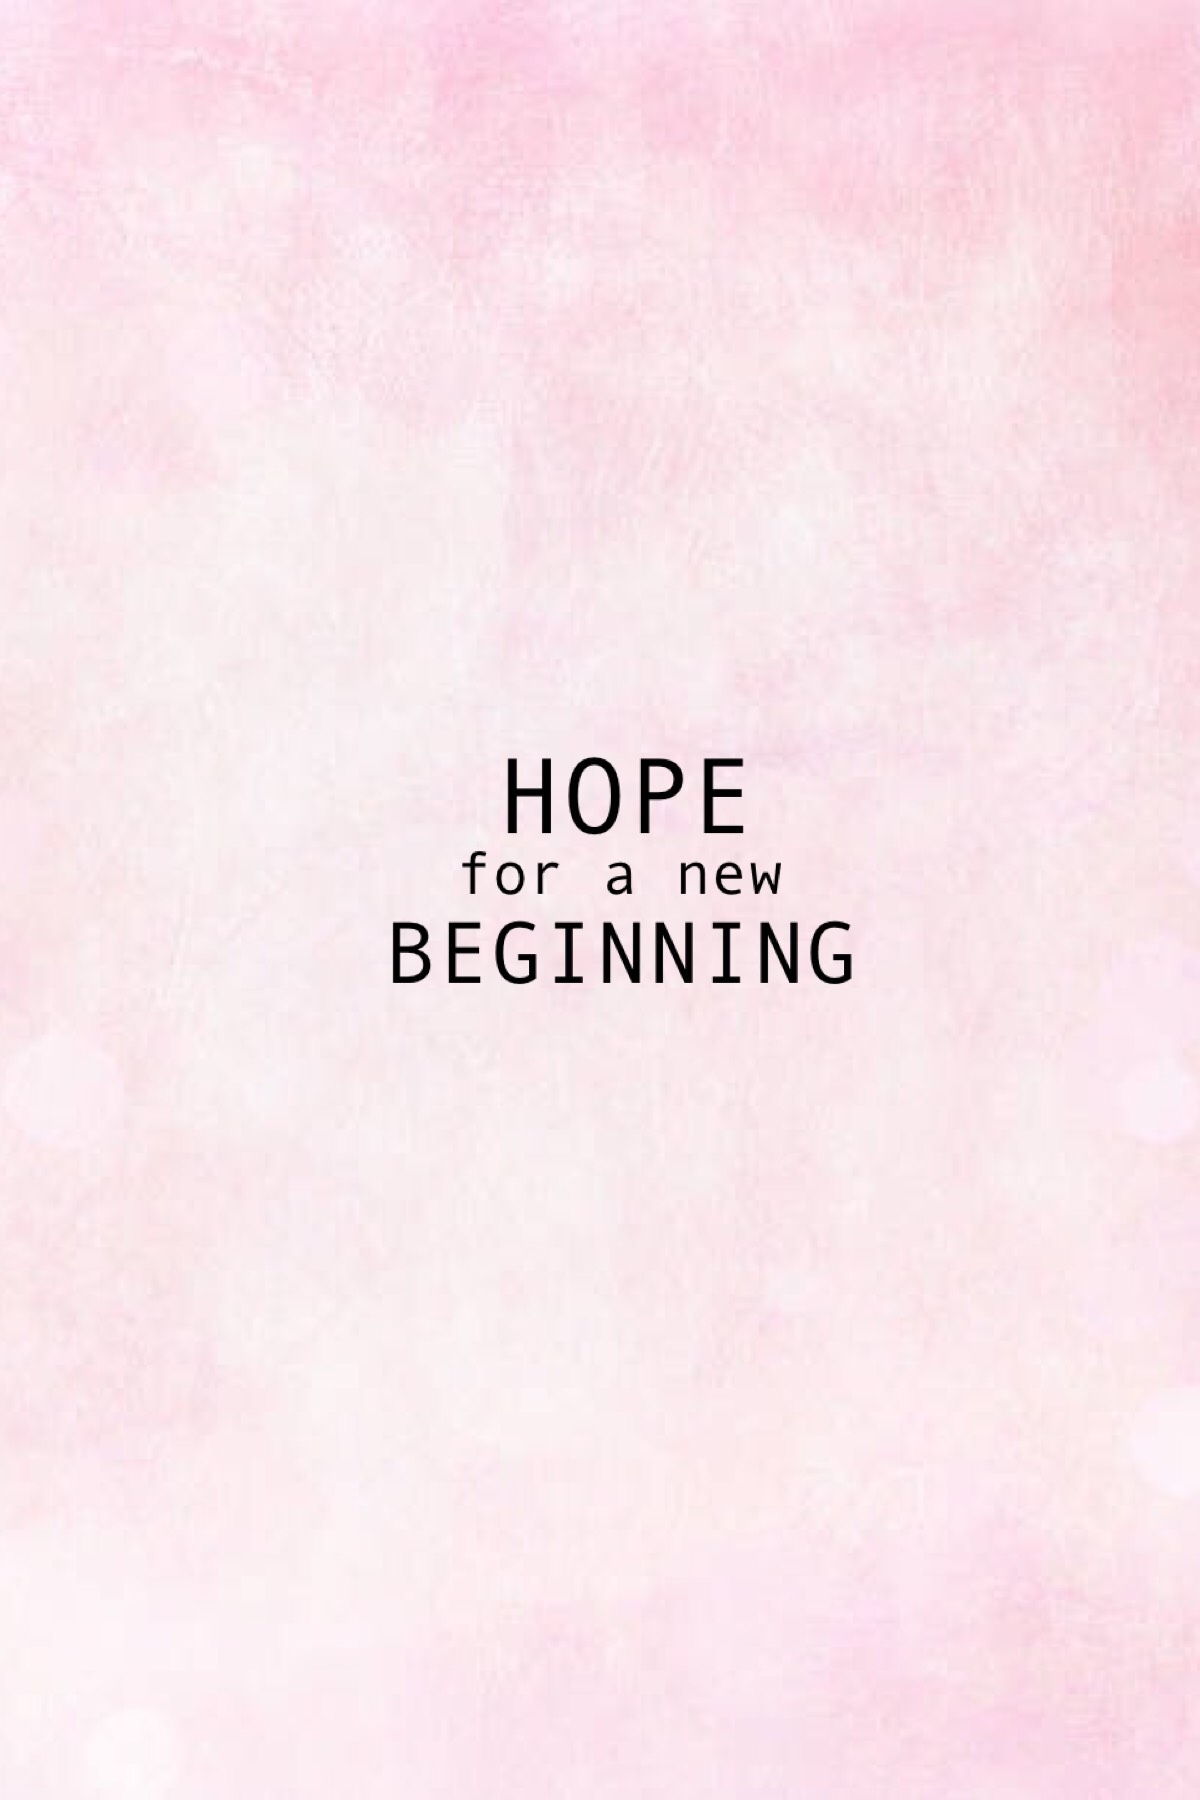 hope for a new beginning